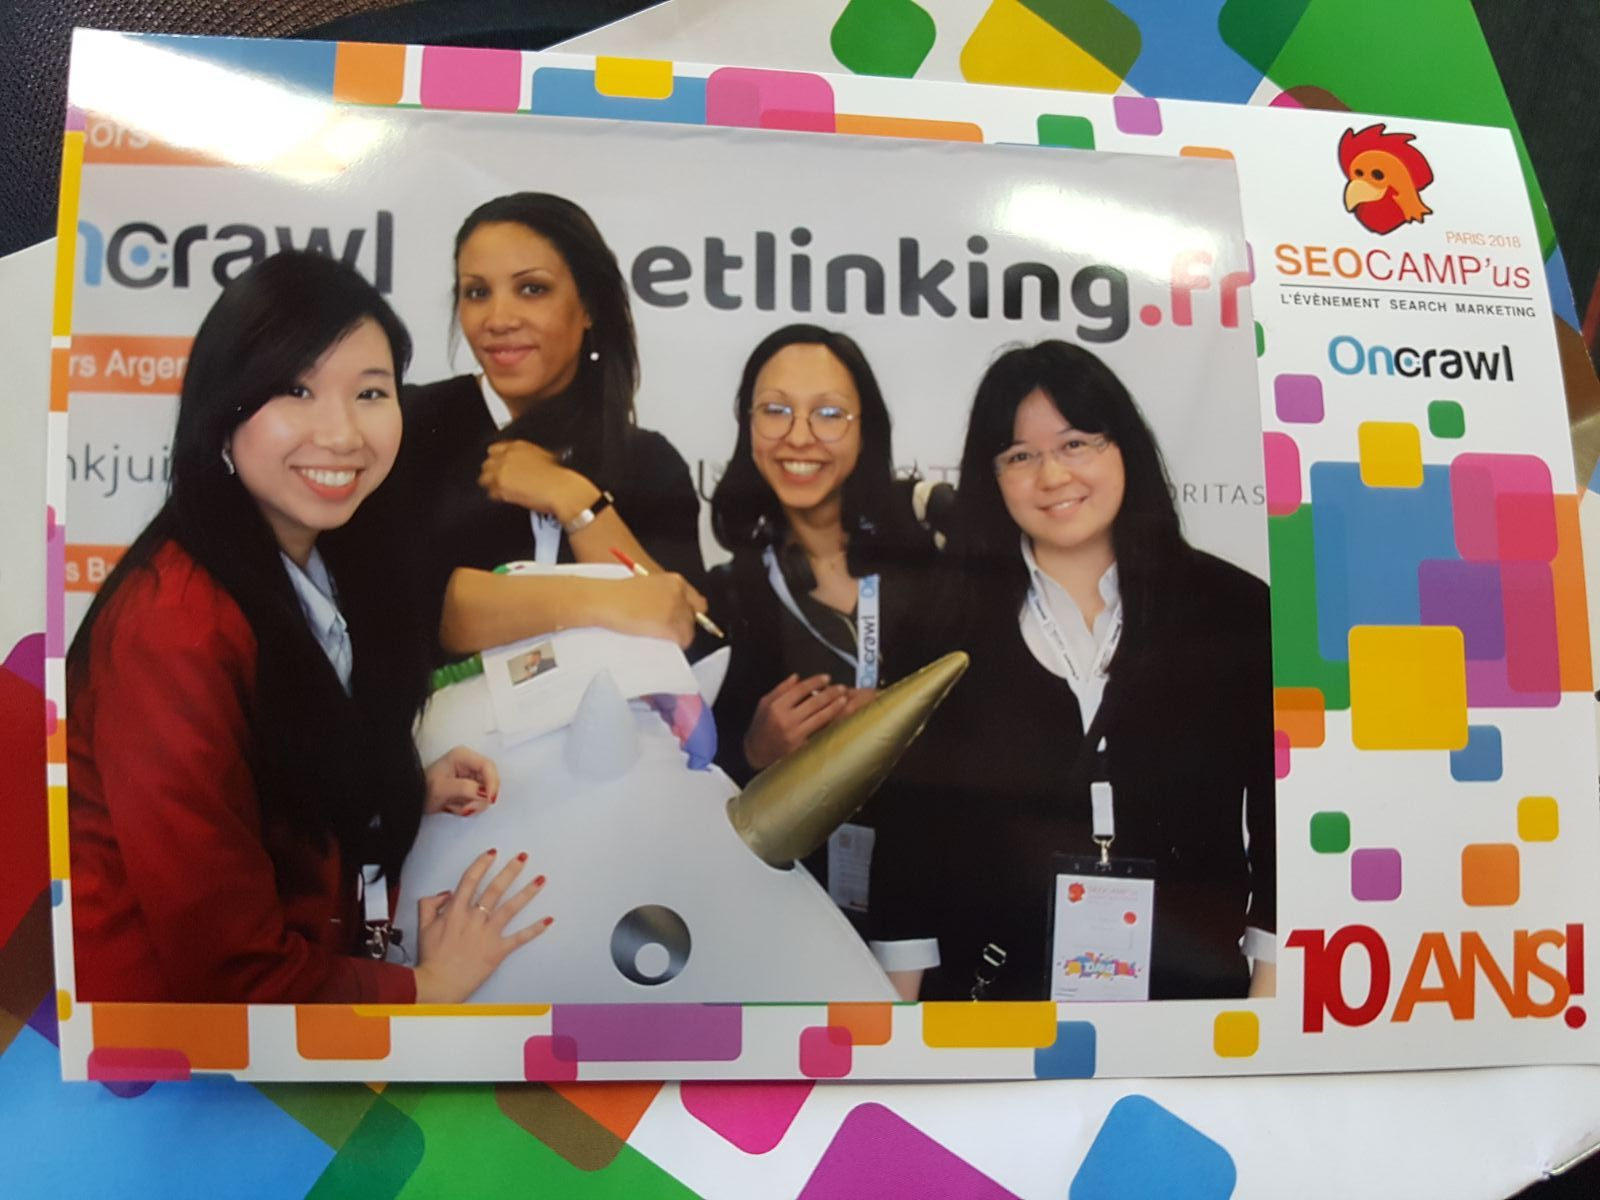 seo-camp-2018-vero-duong-xiko-big-data